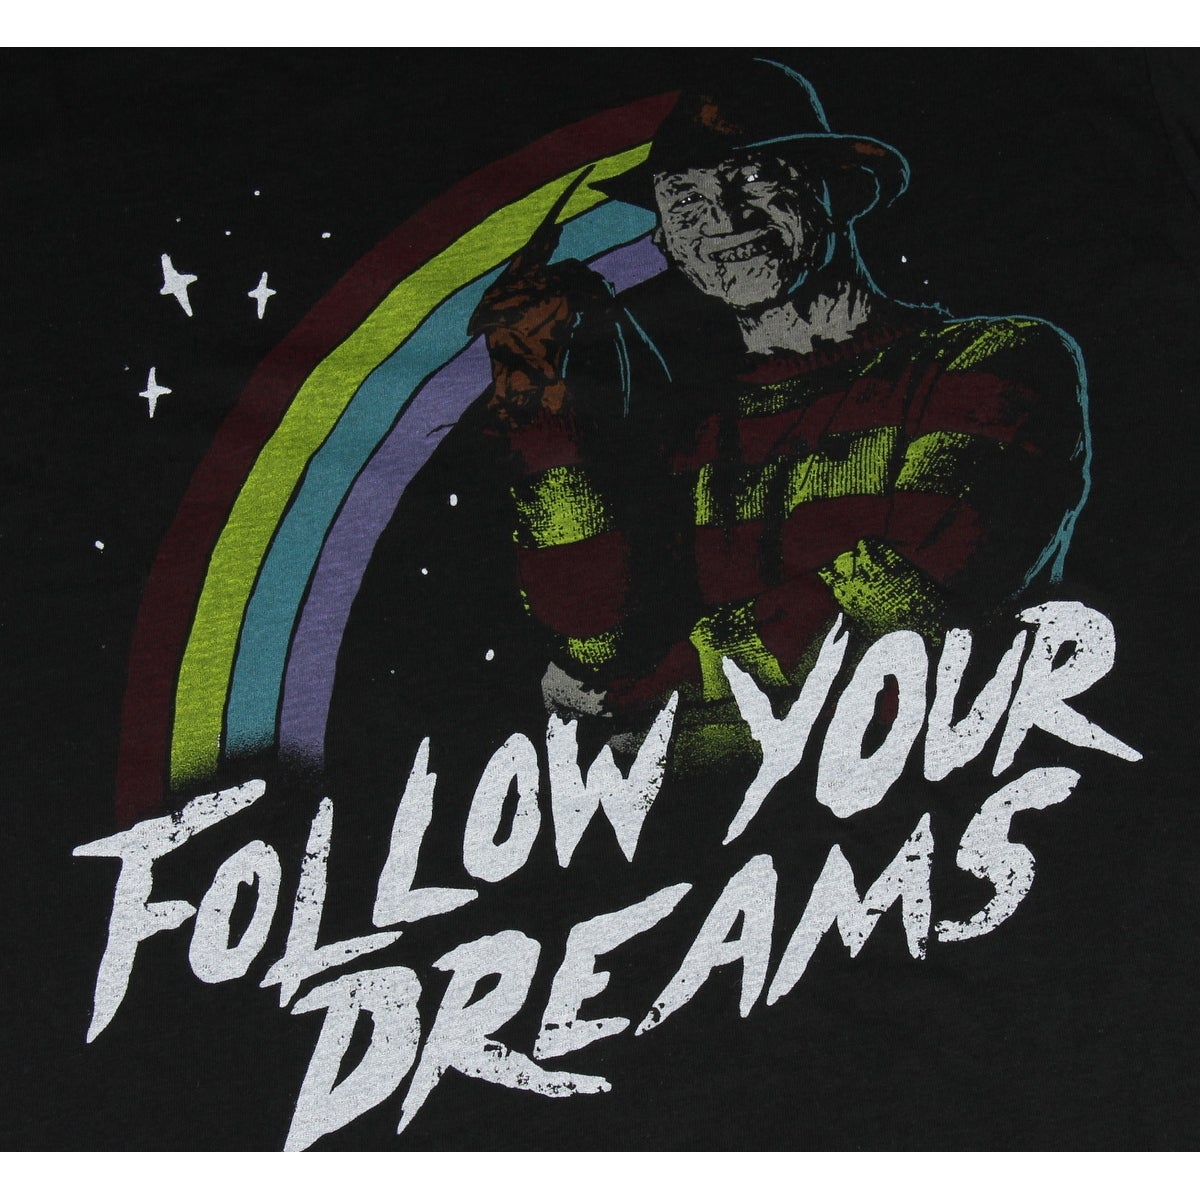 7c397446 Shop Freddy Krueger Shirt - A Nightmare on Elm Street Follow Your Dreams  Horror Slasher Film T-Shirt - Free Shipping On Orders Over $45 - Overstock  - ...